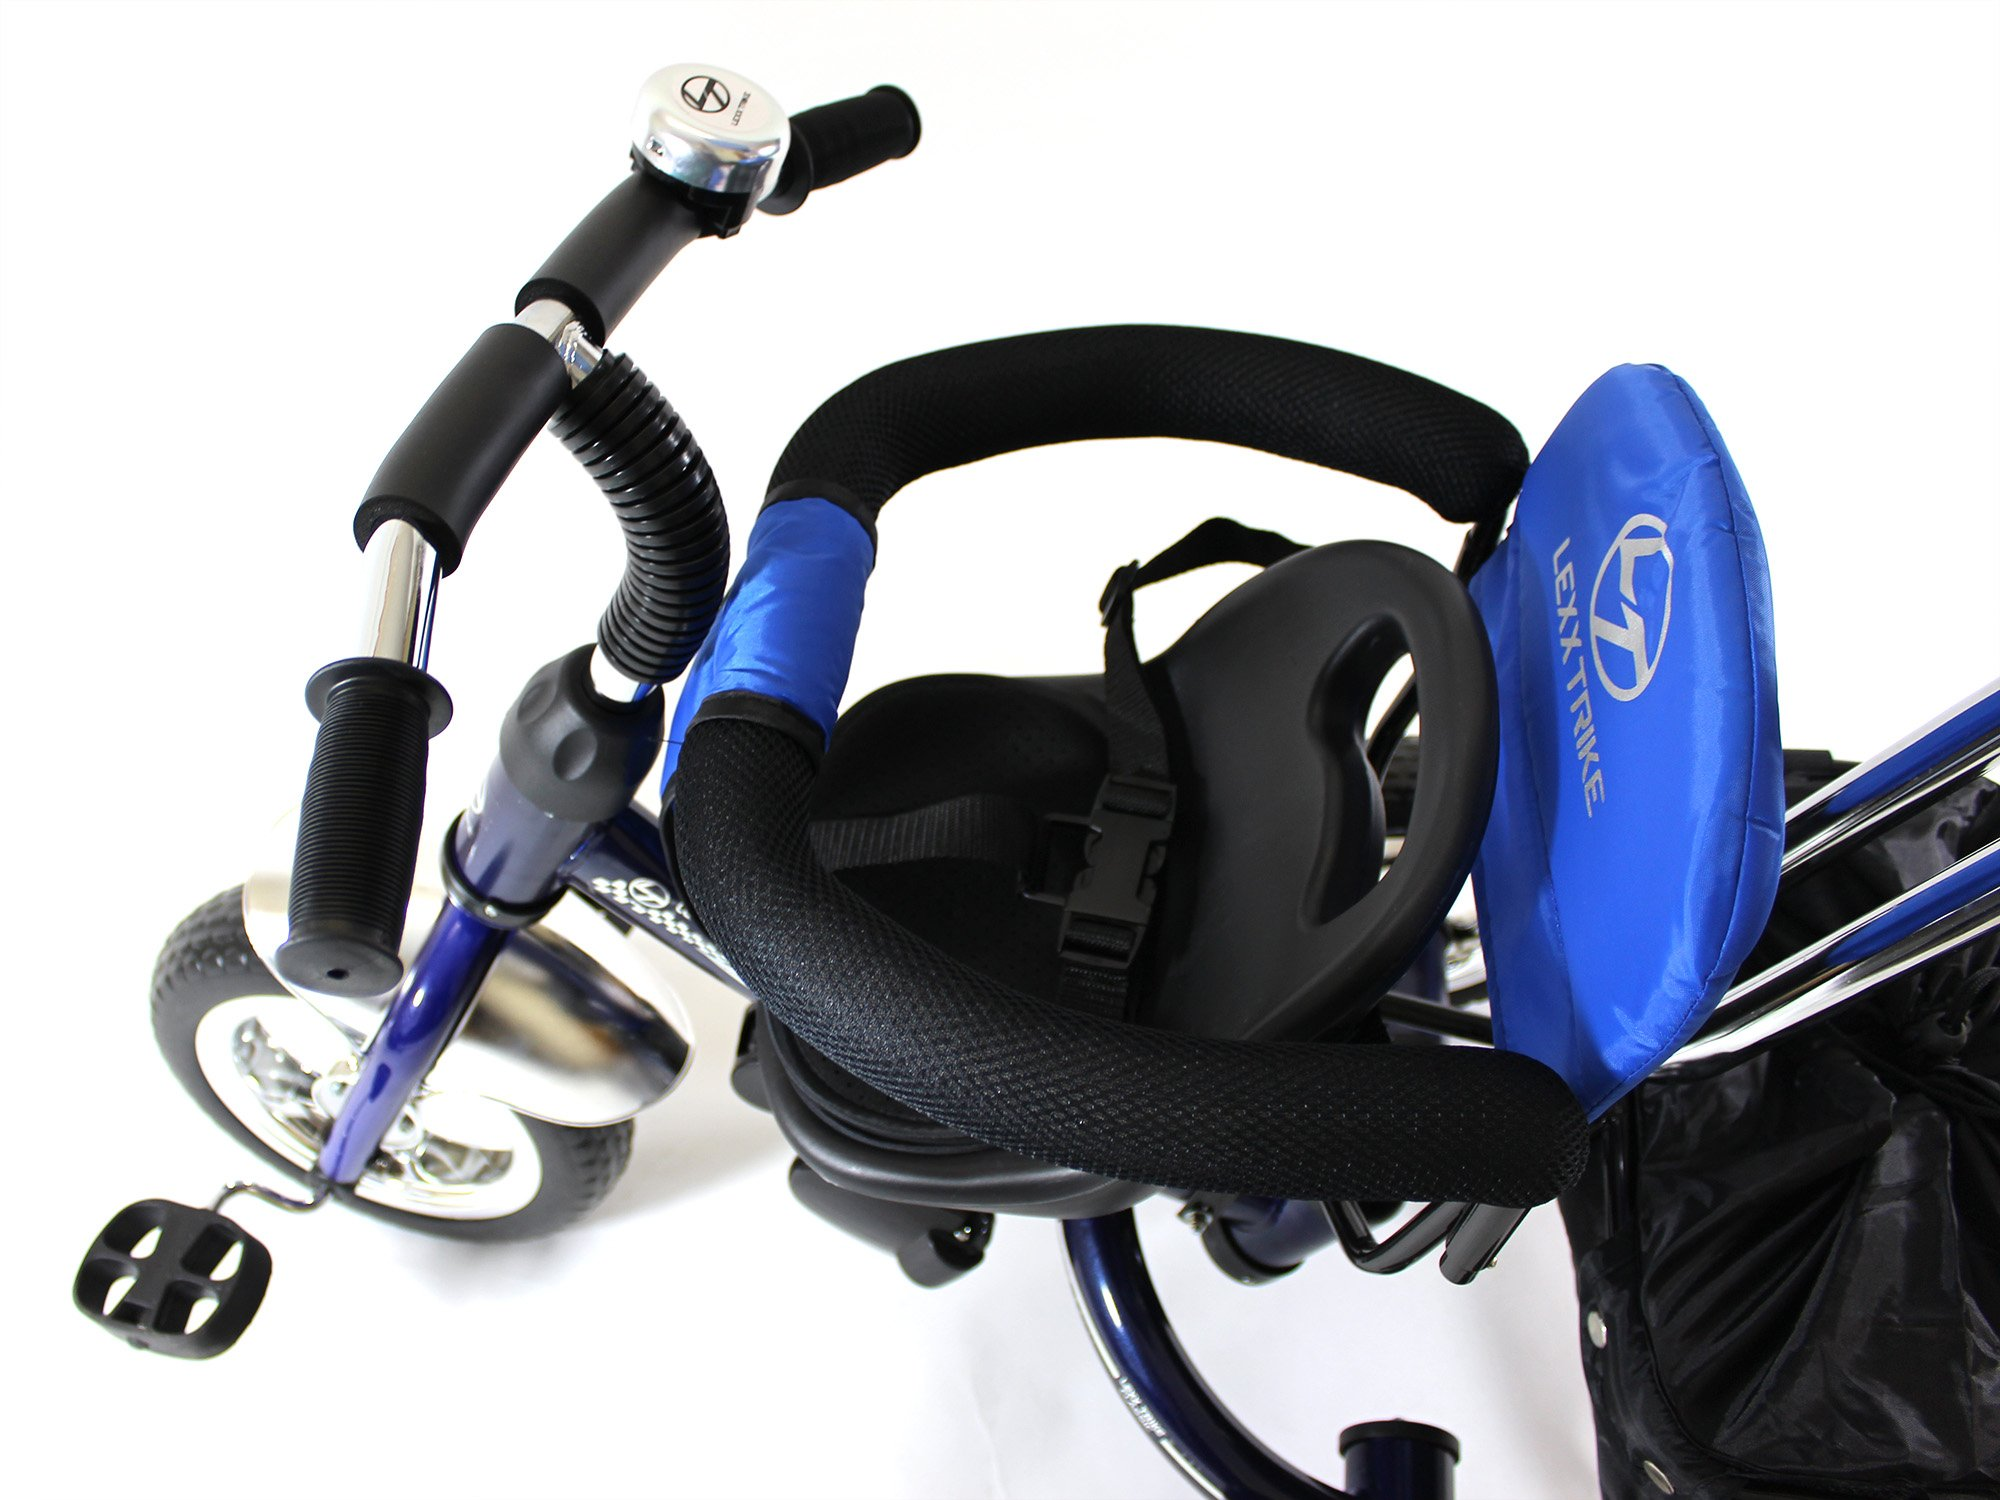 4in1 Lexx Trike Classic Smart Kid's Tricycle 3 Wheel Bike Removable Handle & Canopy NEW BLUE by Lexx Trike (Image #7)